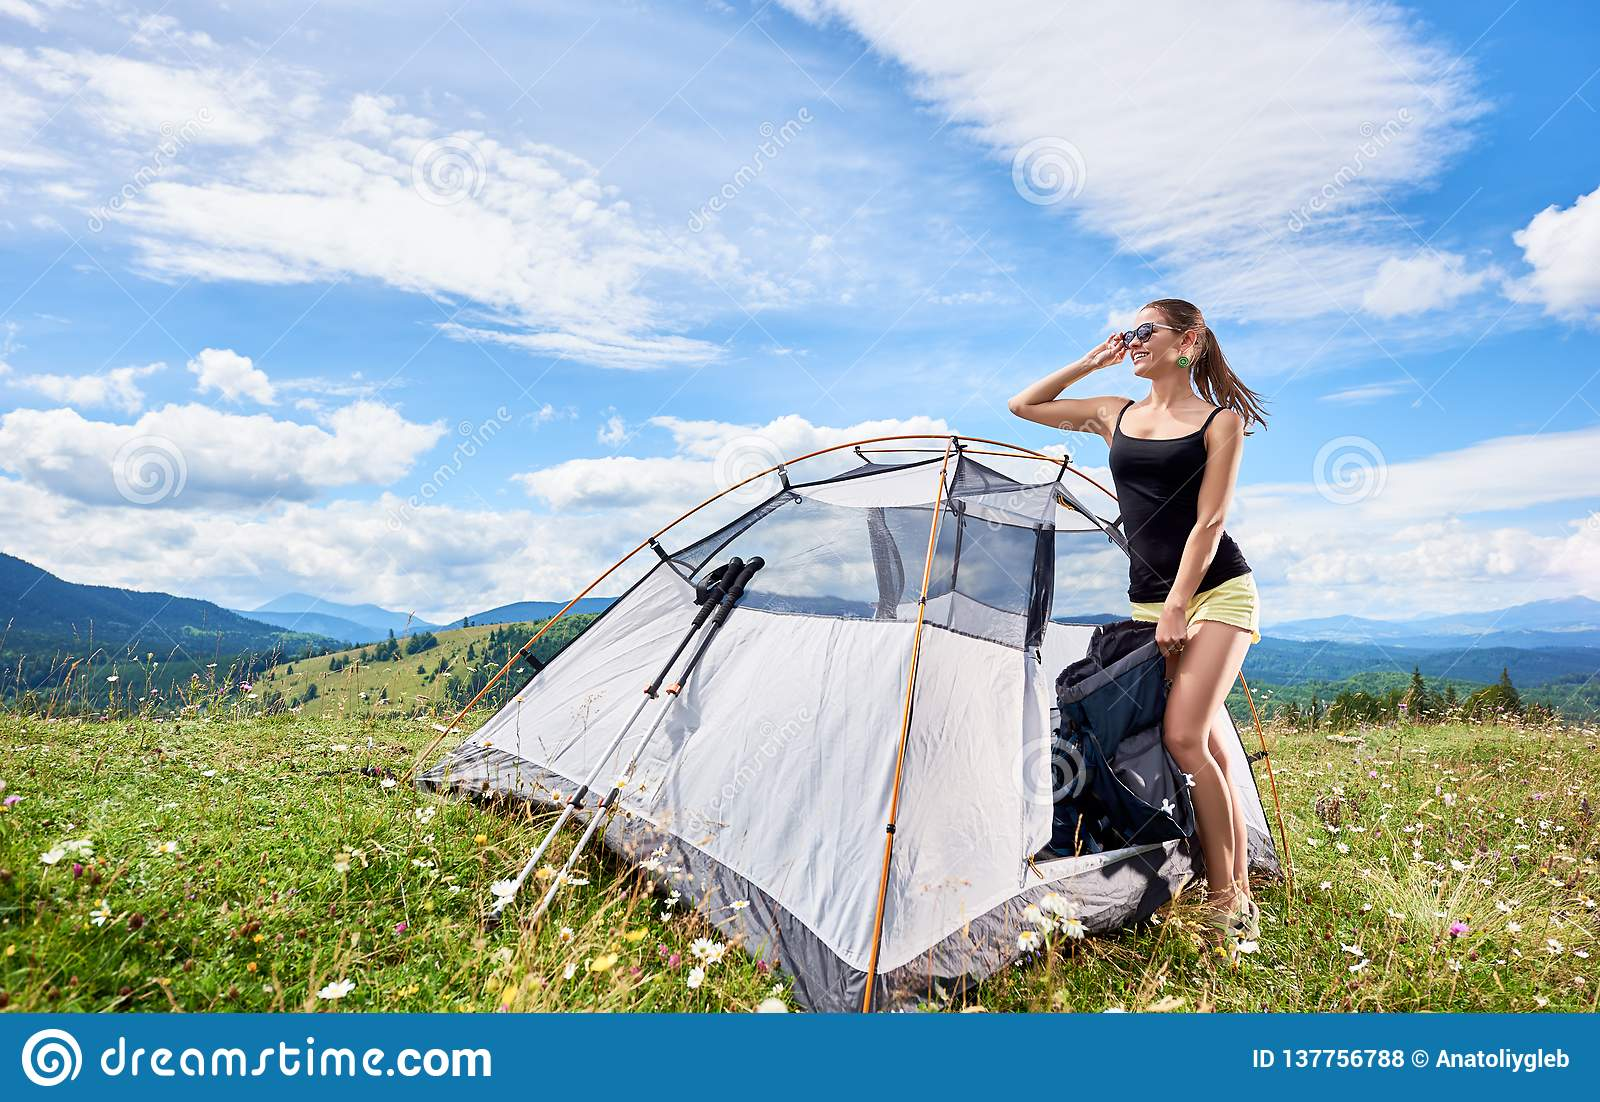 Woman tourist hiking in mountain trail, enjoying summer sunny morning in mountains near tent